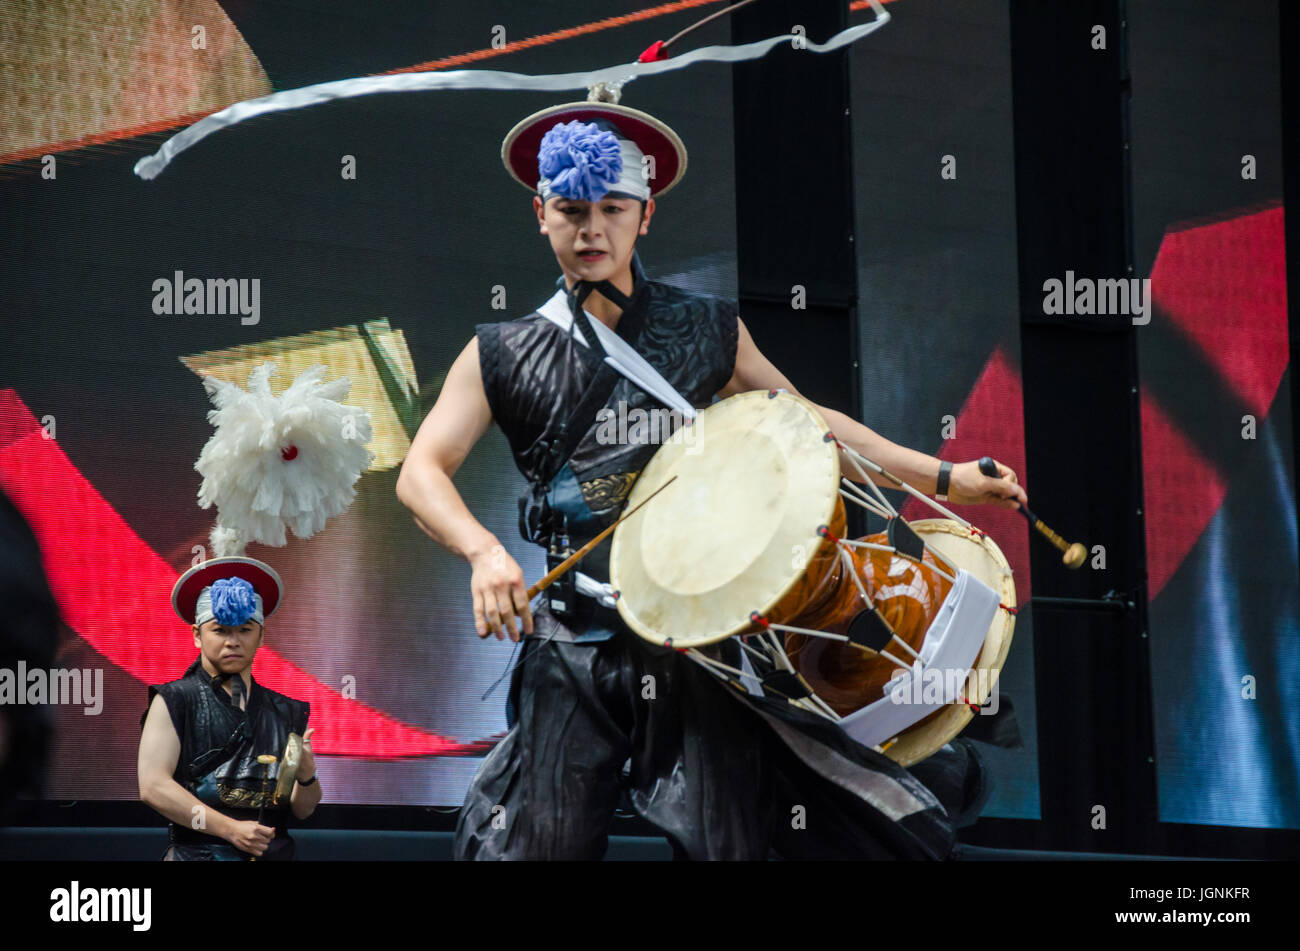 london-uk-8th-july-2017-london-korean-festival-in-london-olympia-matthew-JGNKFR.jpg